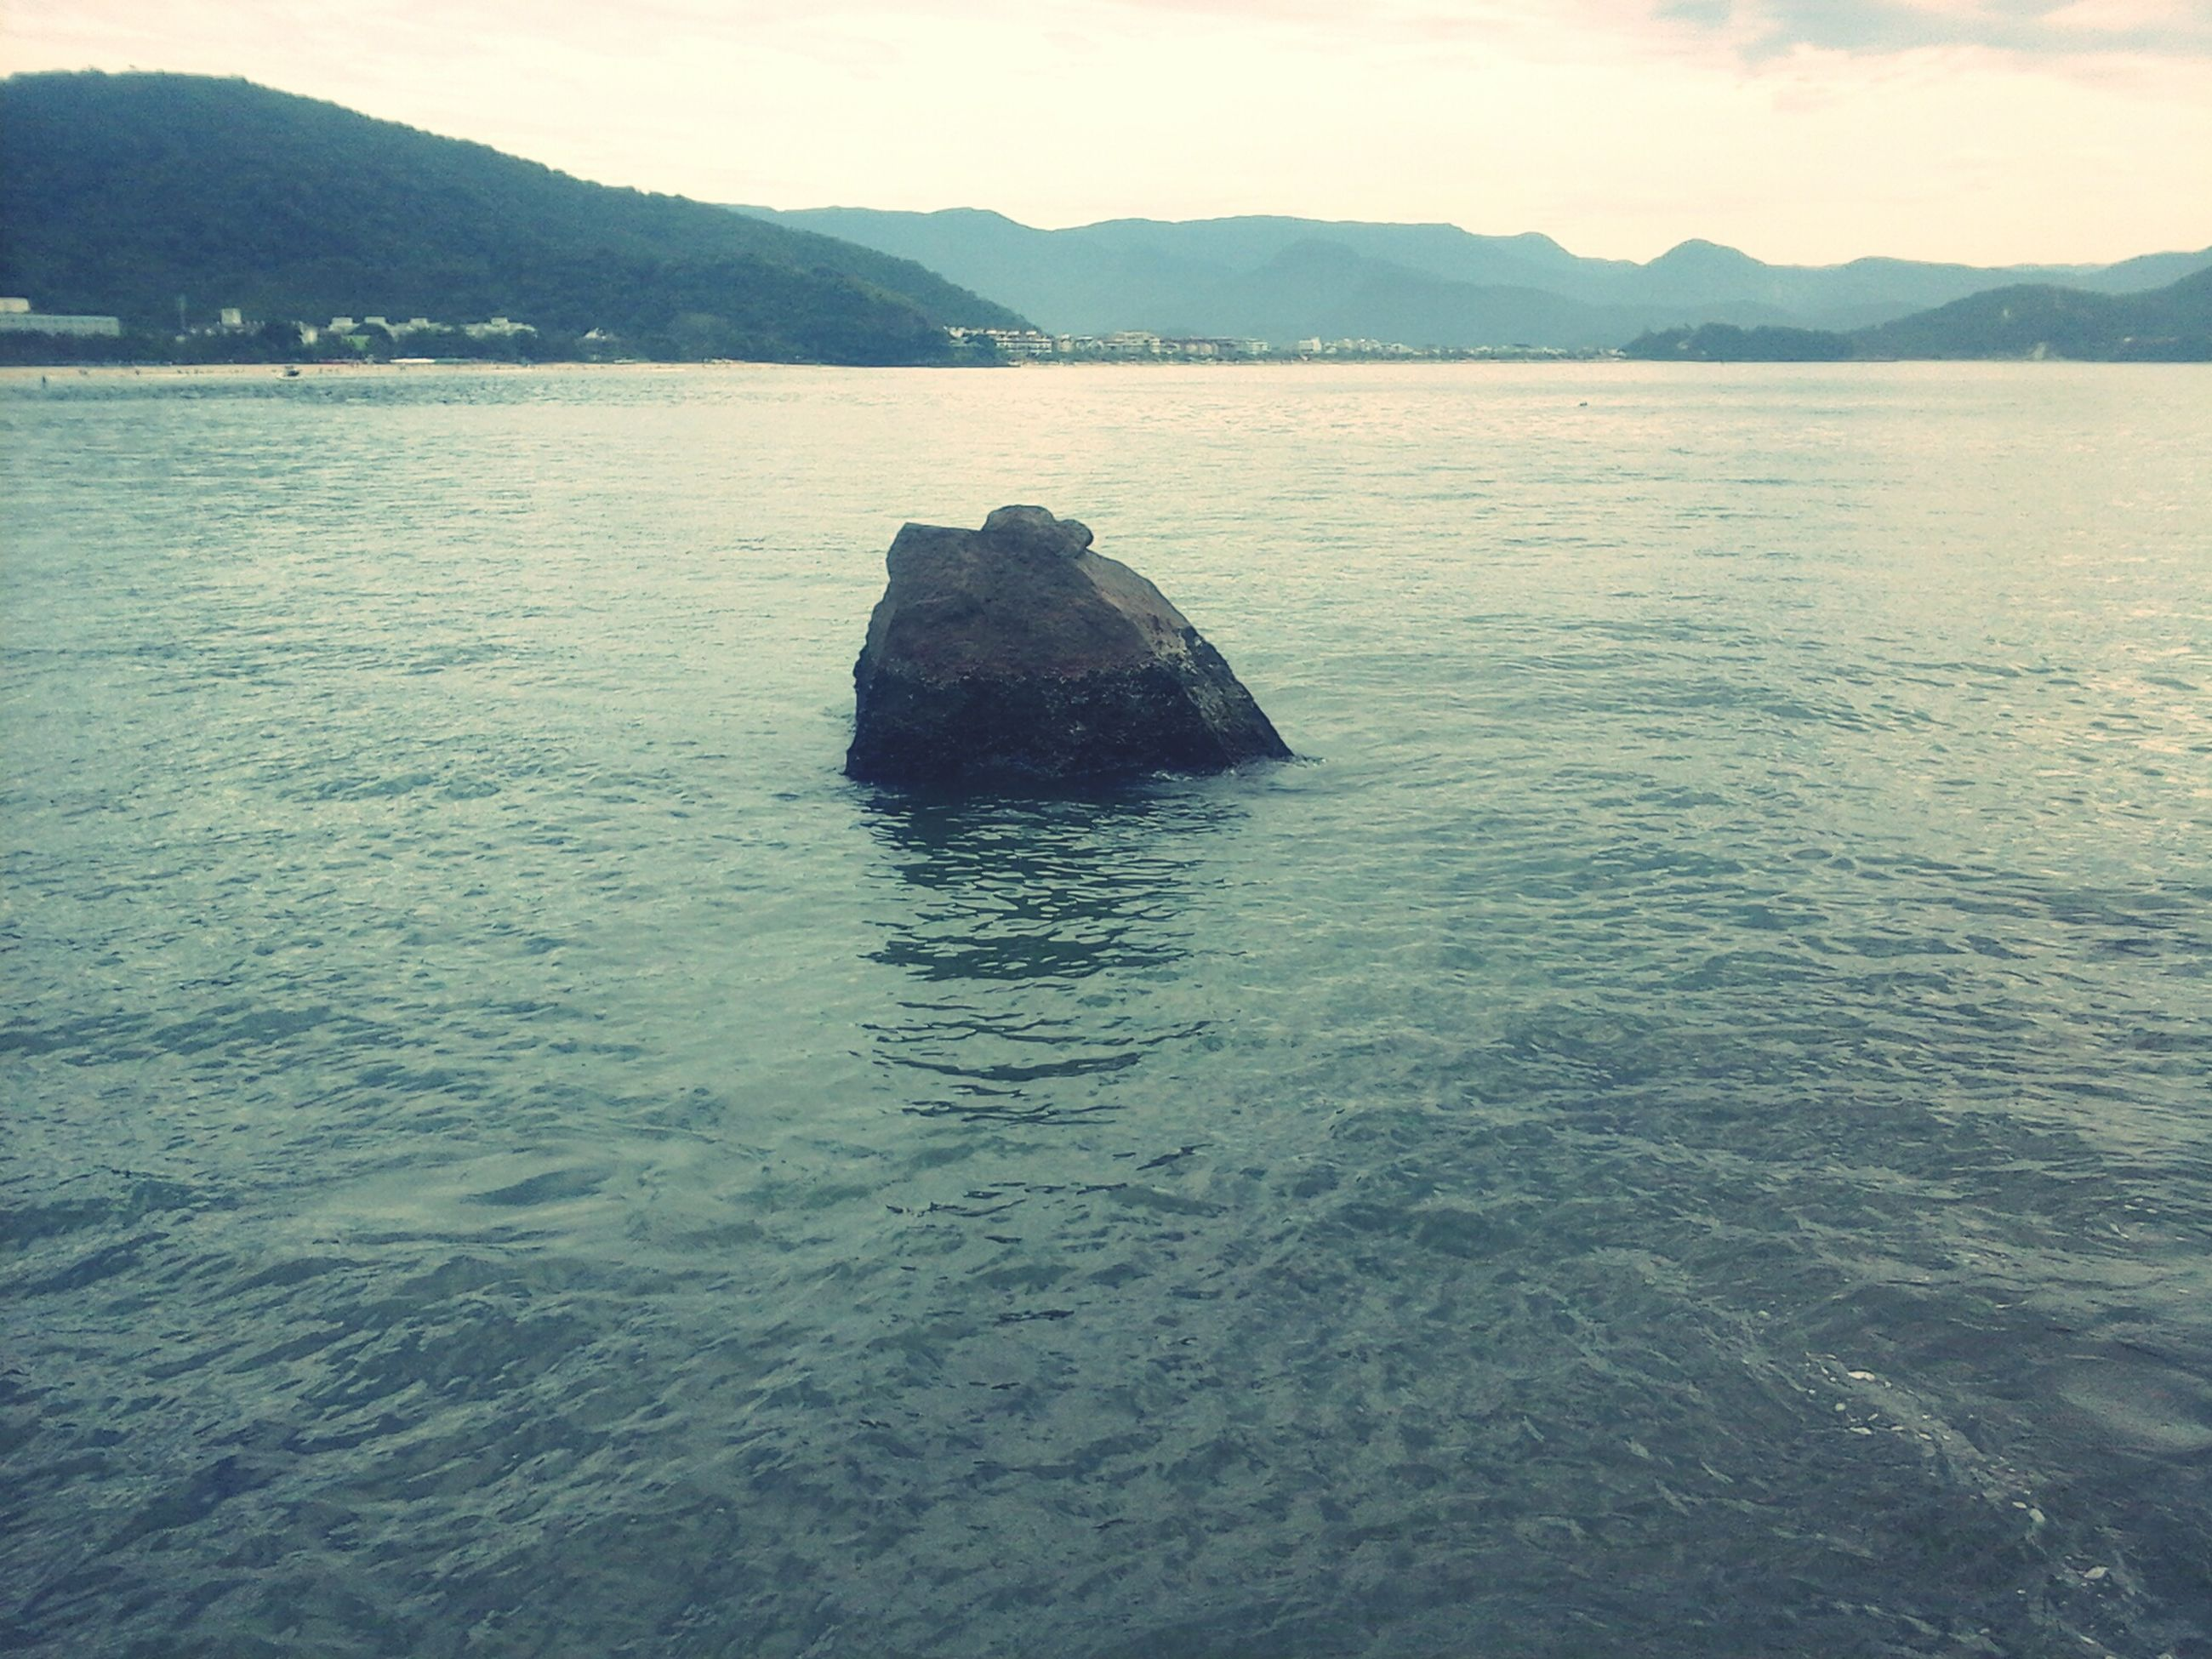 water, mountain, tranquil scene, tranquility, scenics, beauty in nature, mountain range, sea, lake, nature, waterfront, idyllic, sky, rippled, reflection, non-urban scene, calm, outdoors, remote, no people